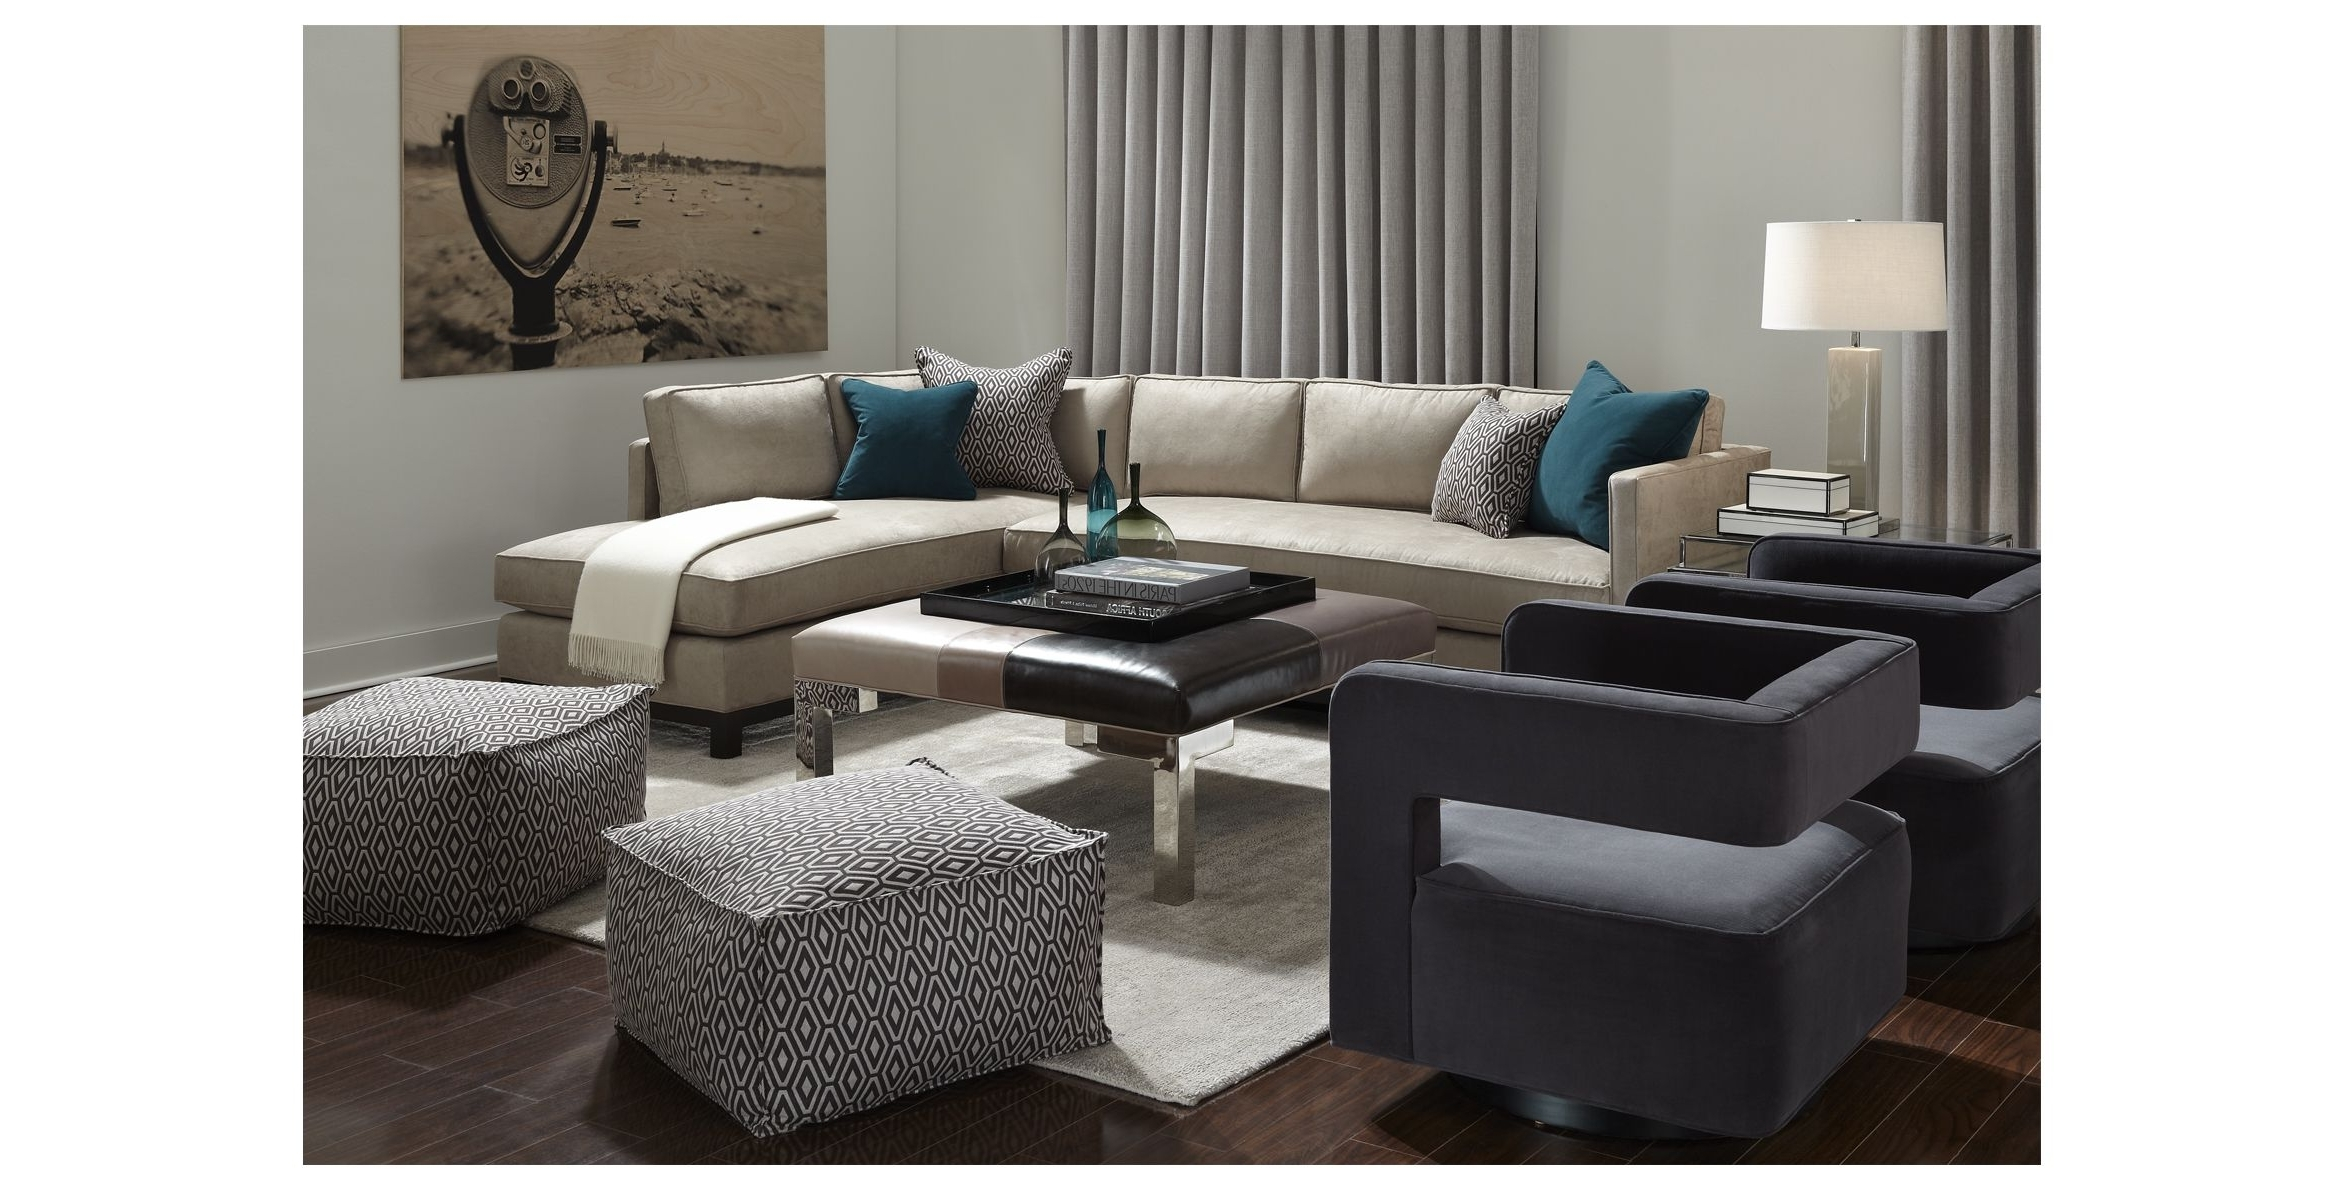 Gold Sectional Sofas With Regard To 2018 Clifton Collection – Mitchell Gold + Bob Williams – Sectional (View 10 of 15)